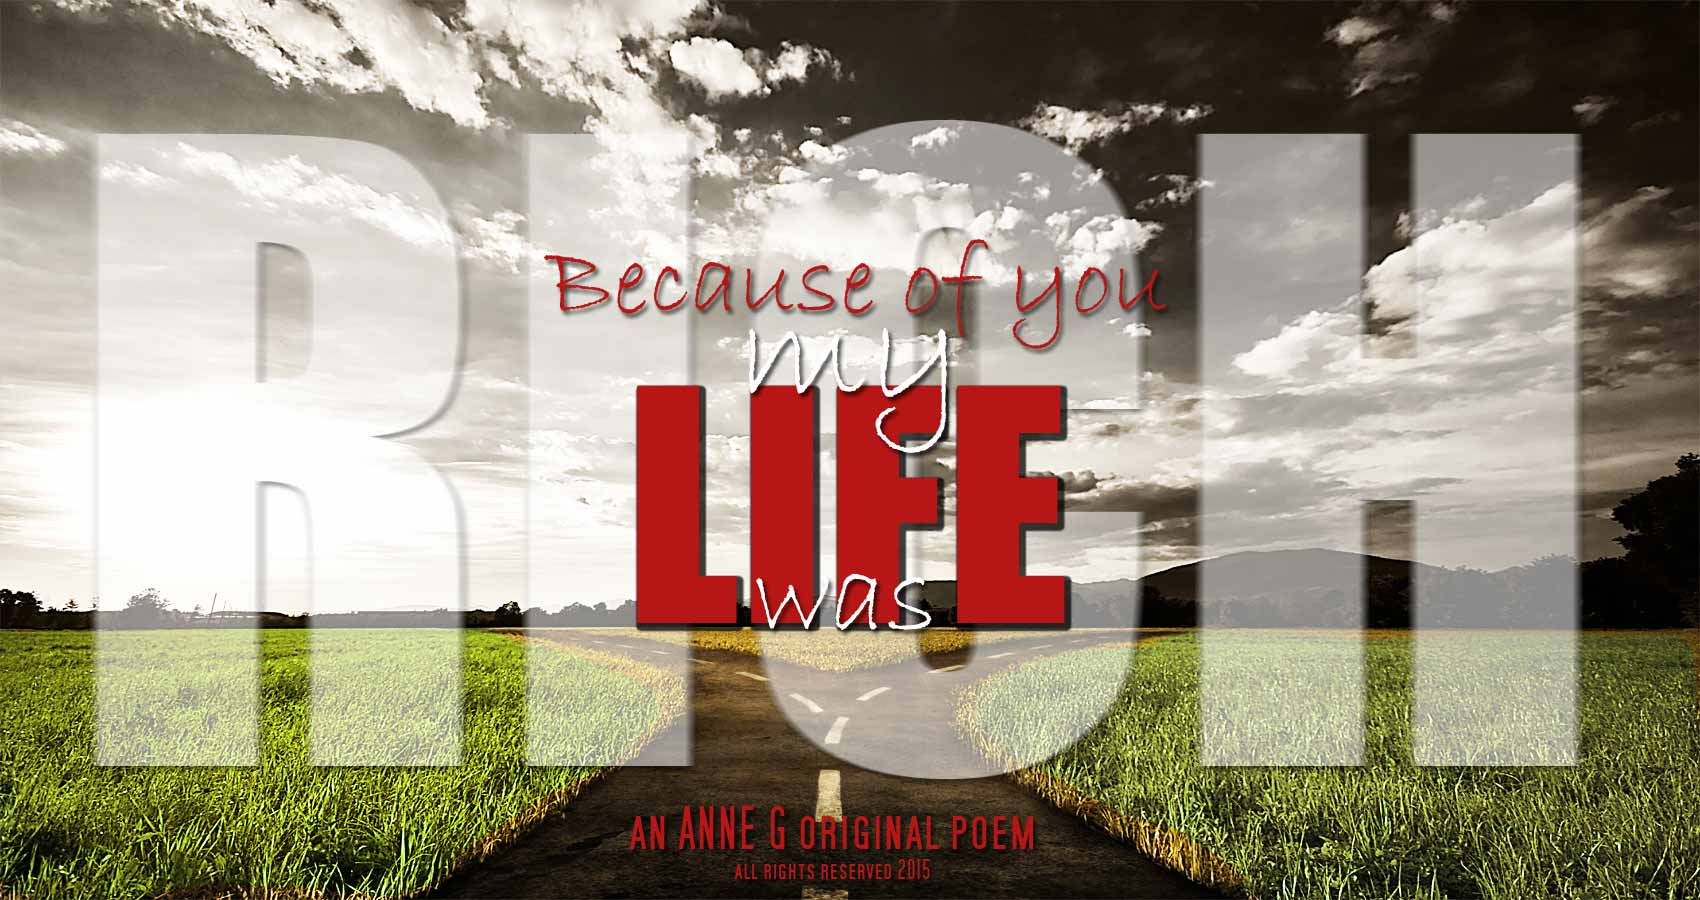 spillwords.com Beacause Of You My Life Was Rich by Anne G